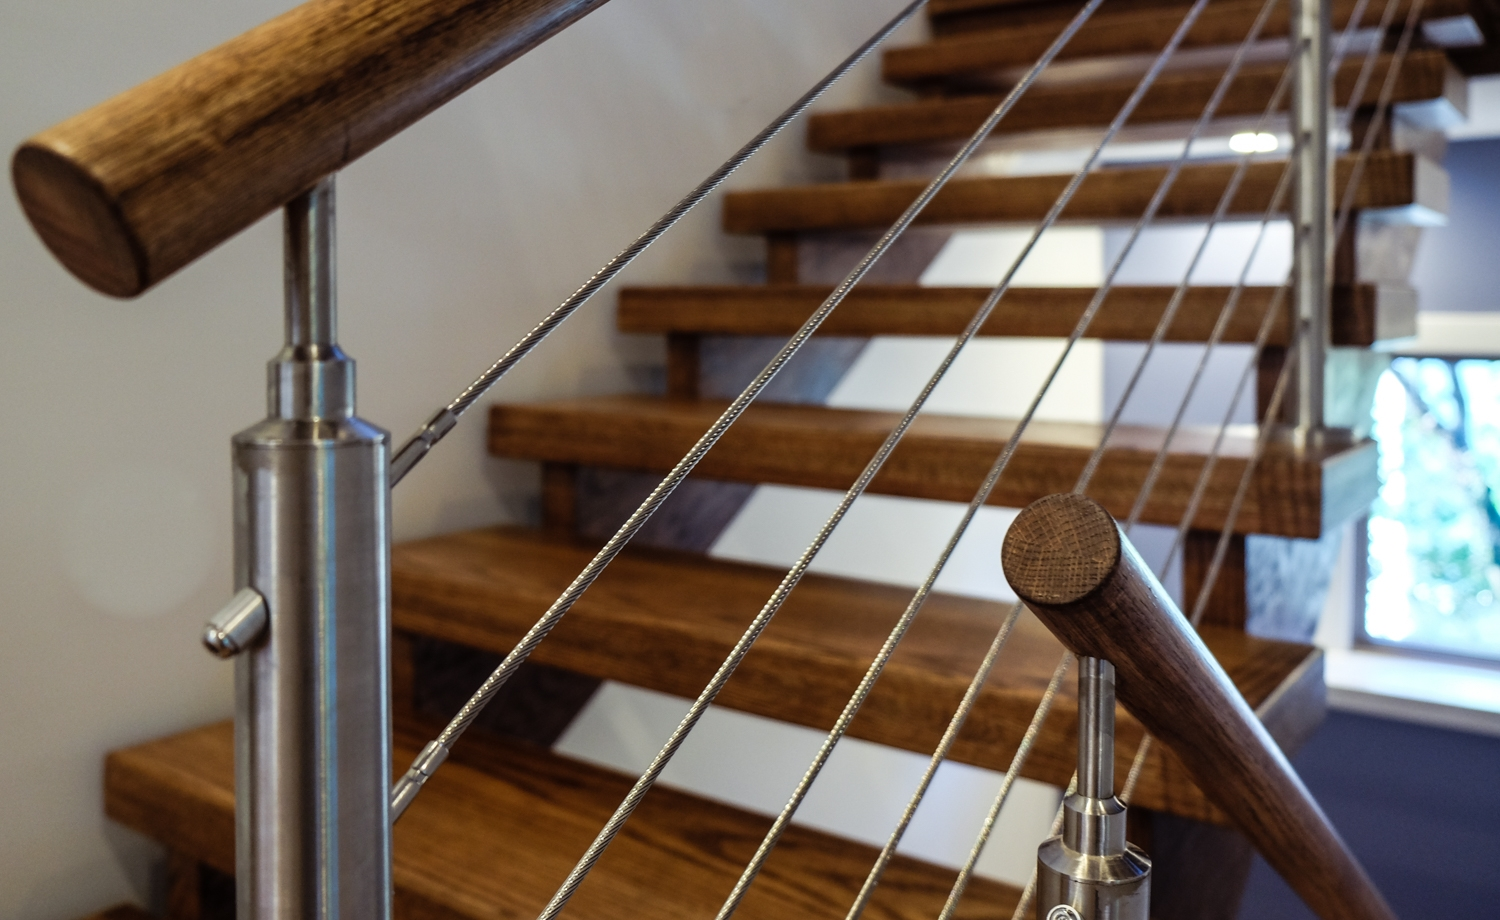 3 Popular Types Of Stair Railing Designs Southern Staircase | Wooden Stair Rails And Balusters | Stair Parts | Wrought Iron Balusters | Stair Spindles | Newel Posts | Stair Treads